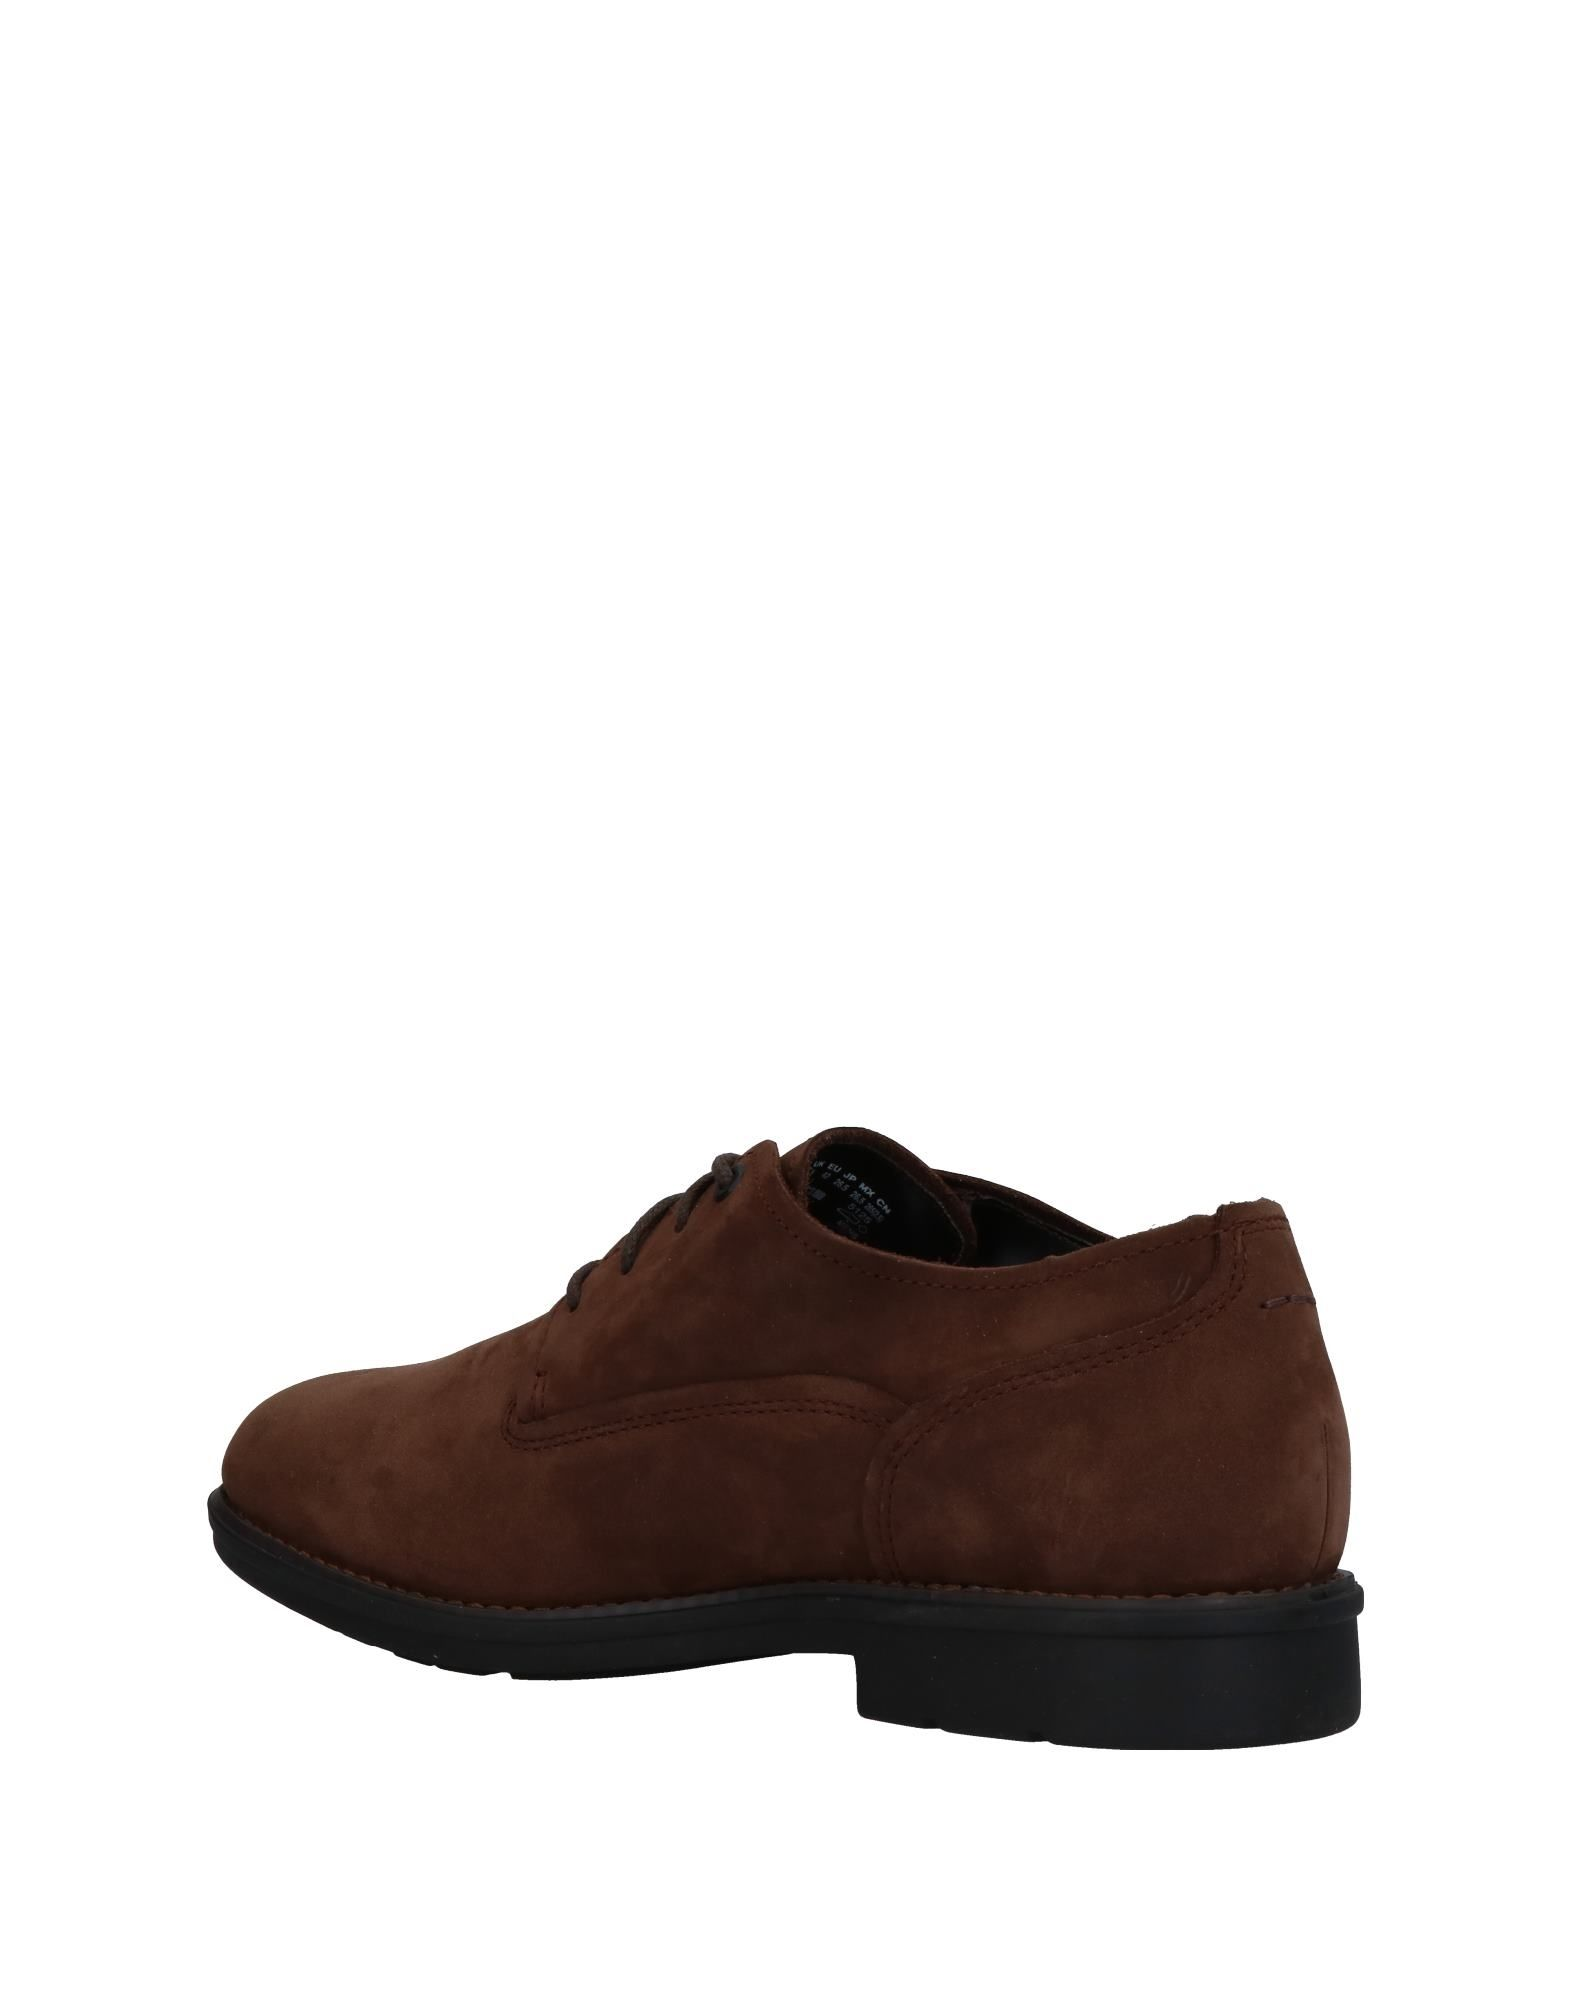 Chaussures À Lacets Timberland Homme - Chaussures À Lacets Timberland sur